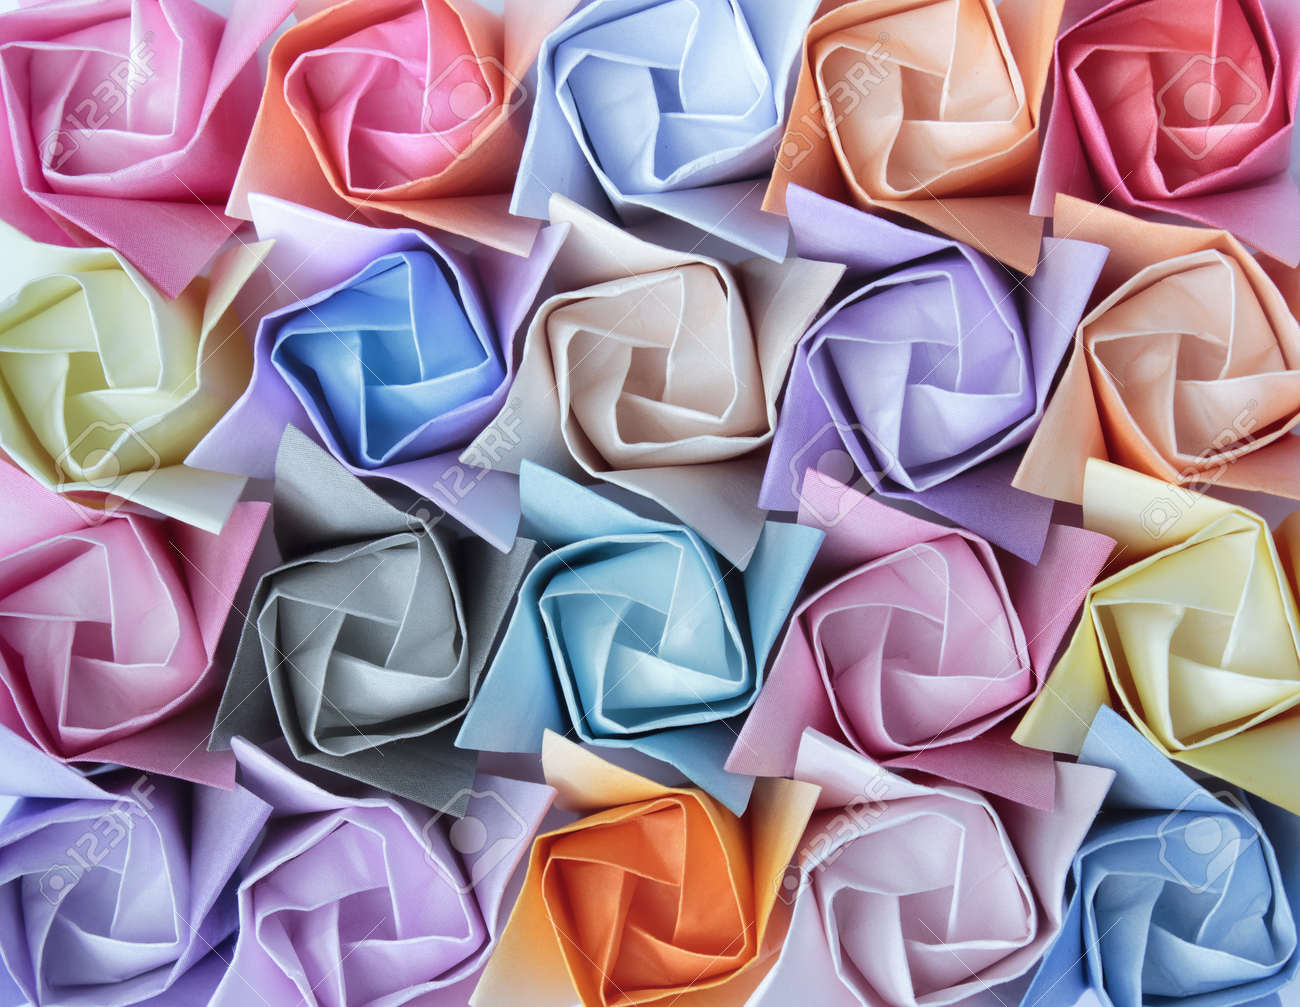 Top view of twenty colourful paper roses arranged as a decorative background Stock Photo - 9240633